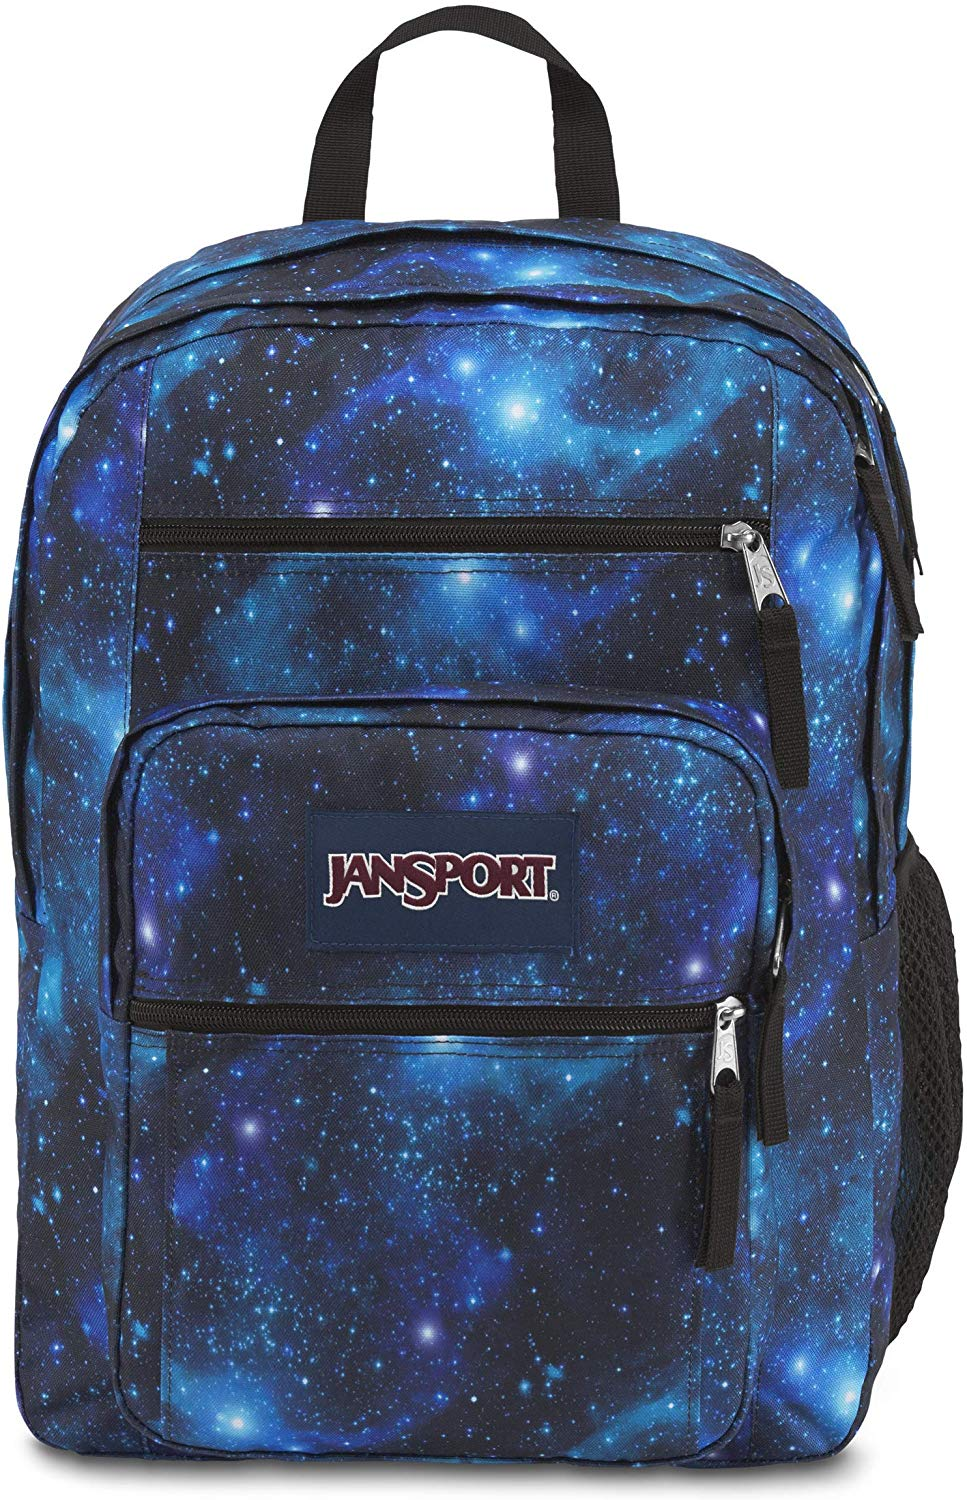 best jansport backpacks